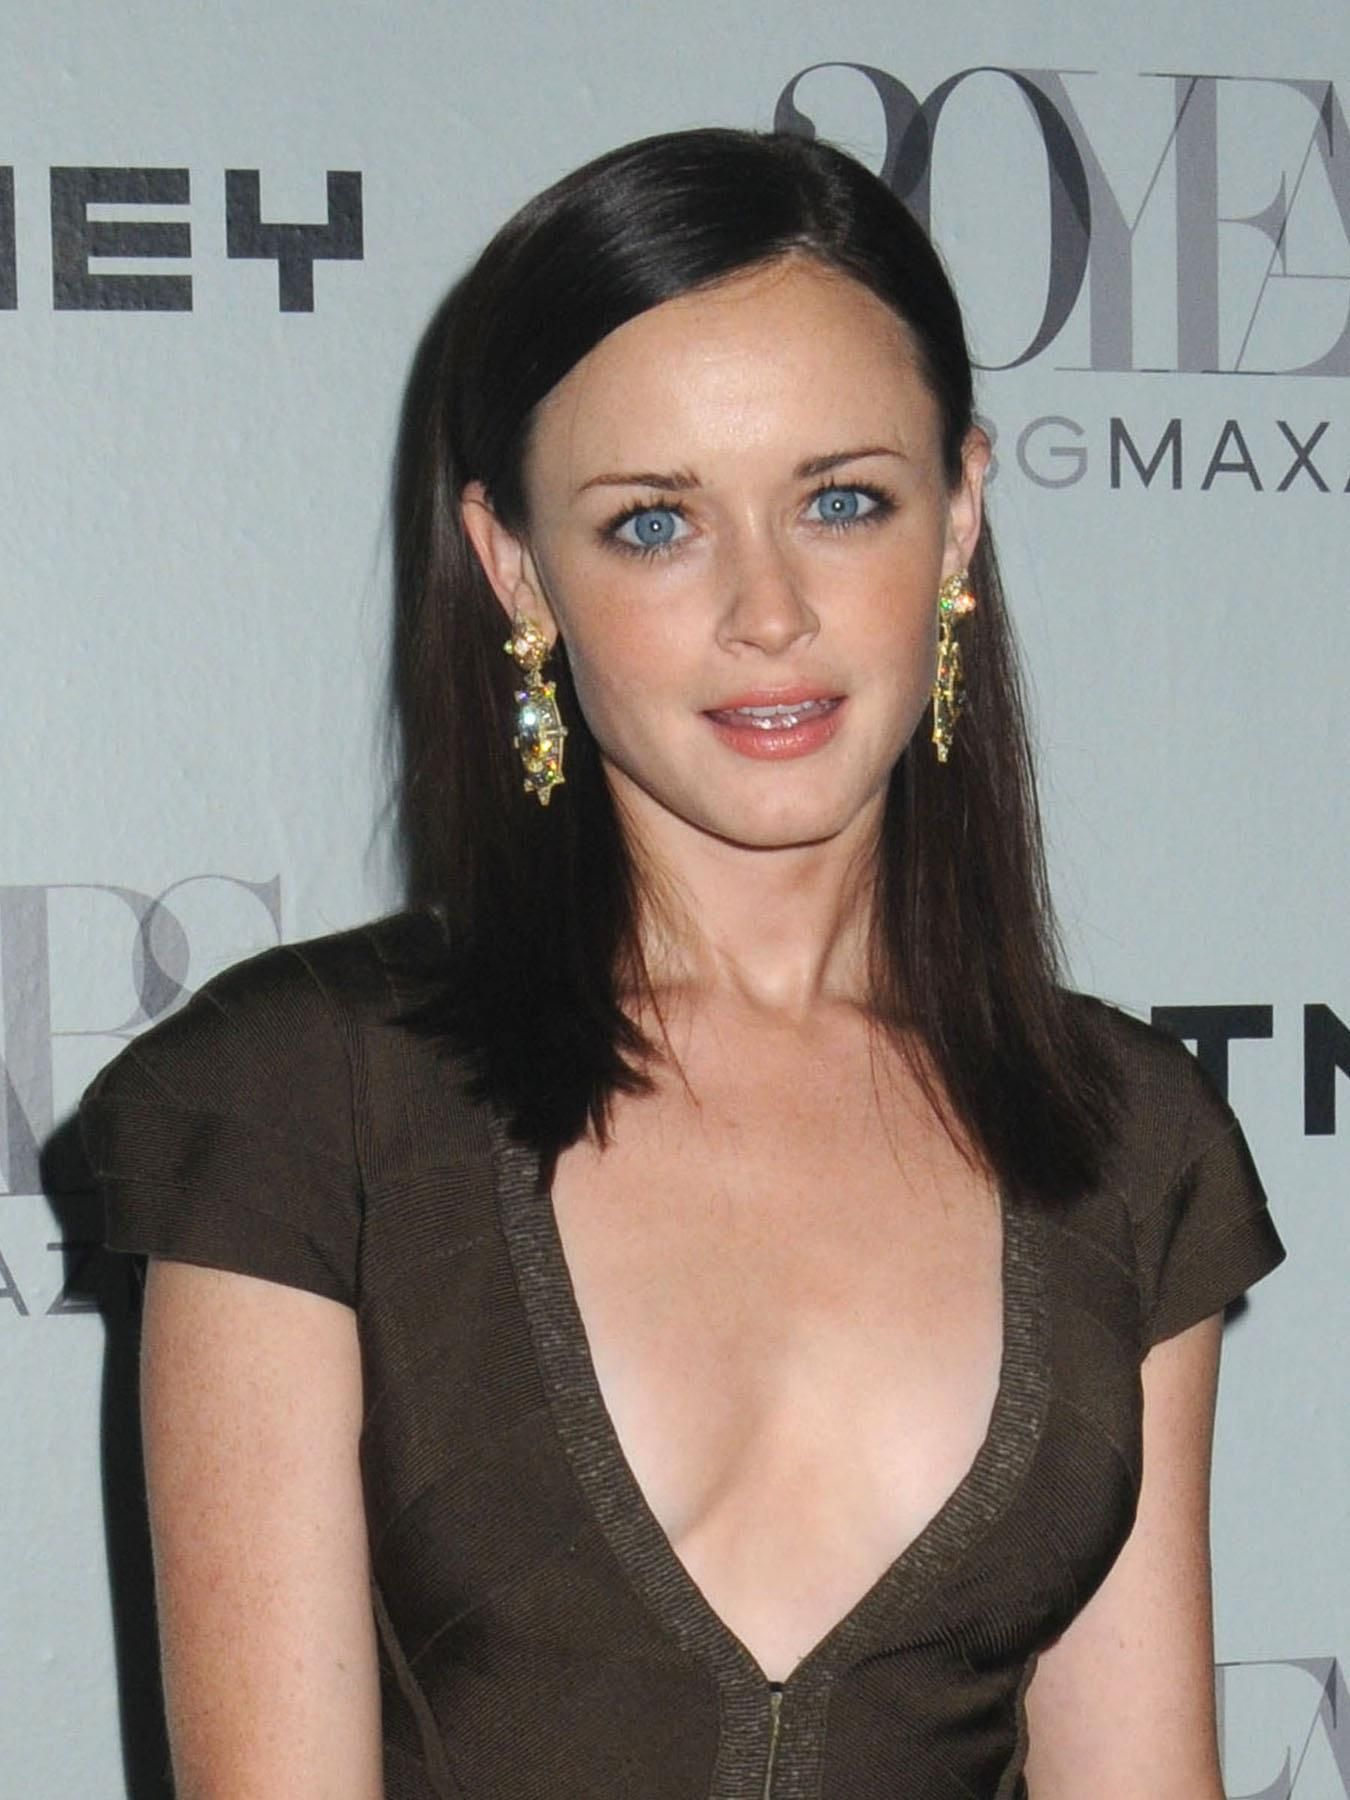 Alexis Bledel Hd Wallpapers Alexis Bledel Beauty Rory Gilmore